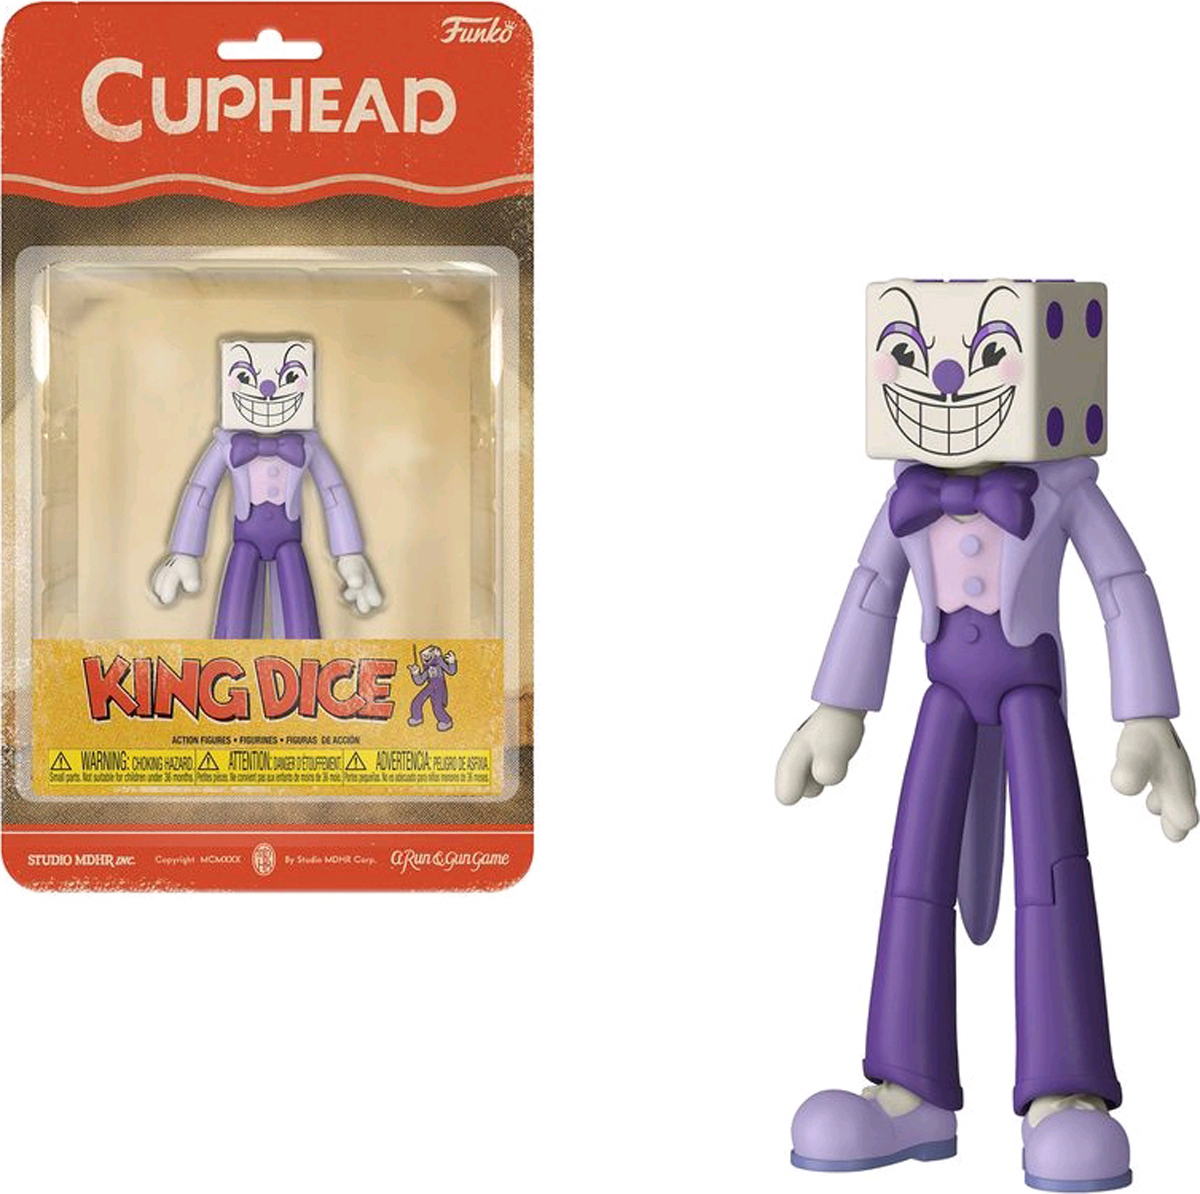 Фото - Фигурка Funko Action Figures: Cuphead: King Dice 33422 мягкая игрушка cuphead cuphead